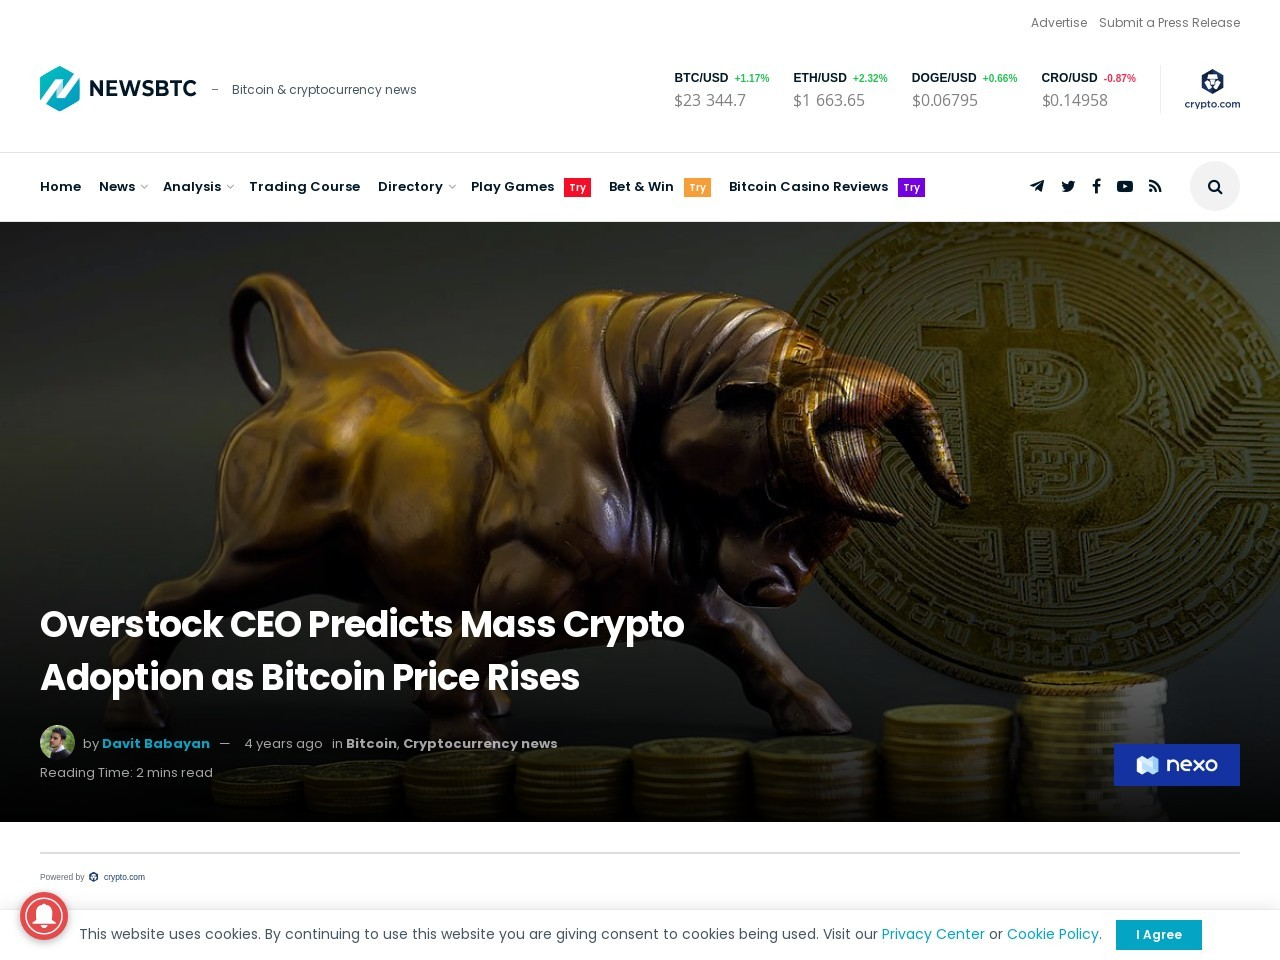 Overstock CEO Predicts Mass Crypto Adoption as Bitcoin Price Rises